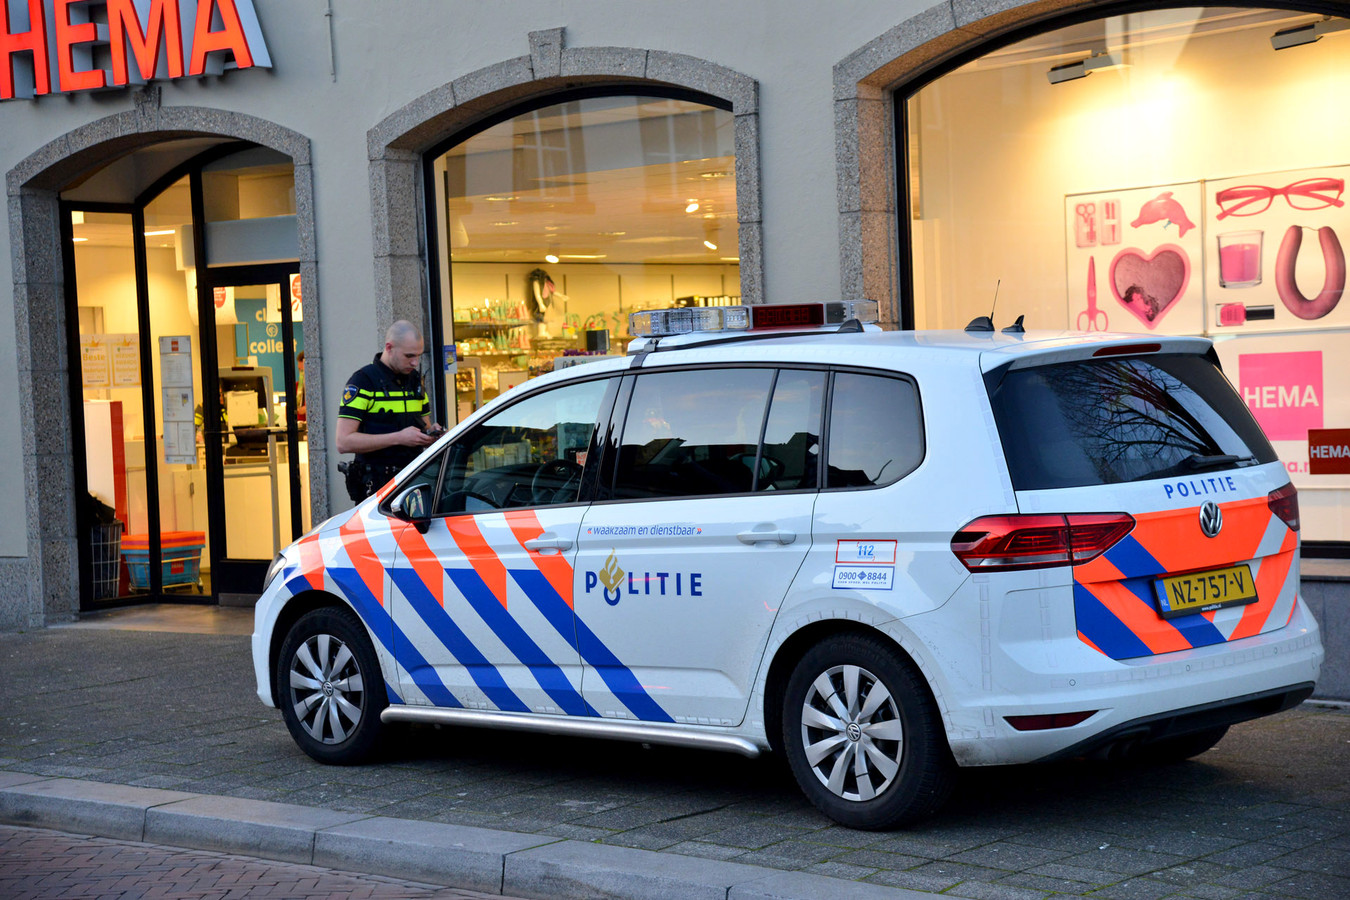 Gewapende overval op HEMA in Princenhage; politie zoekt dader. Foto Perry Roovers / MaRicMedia